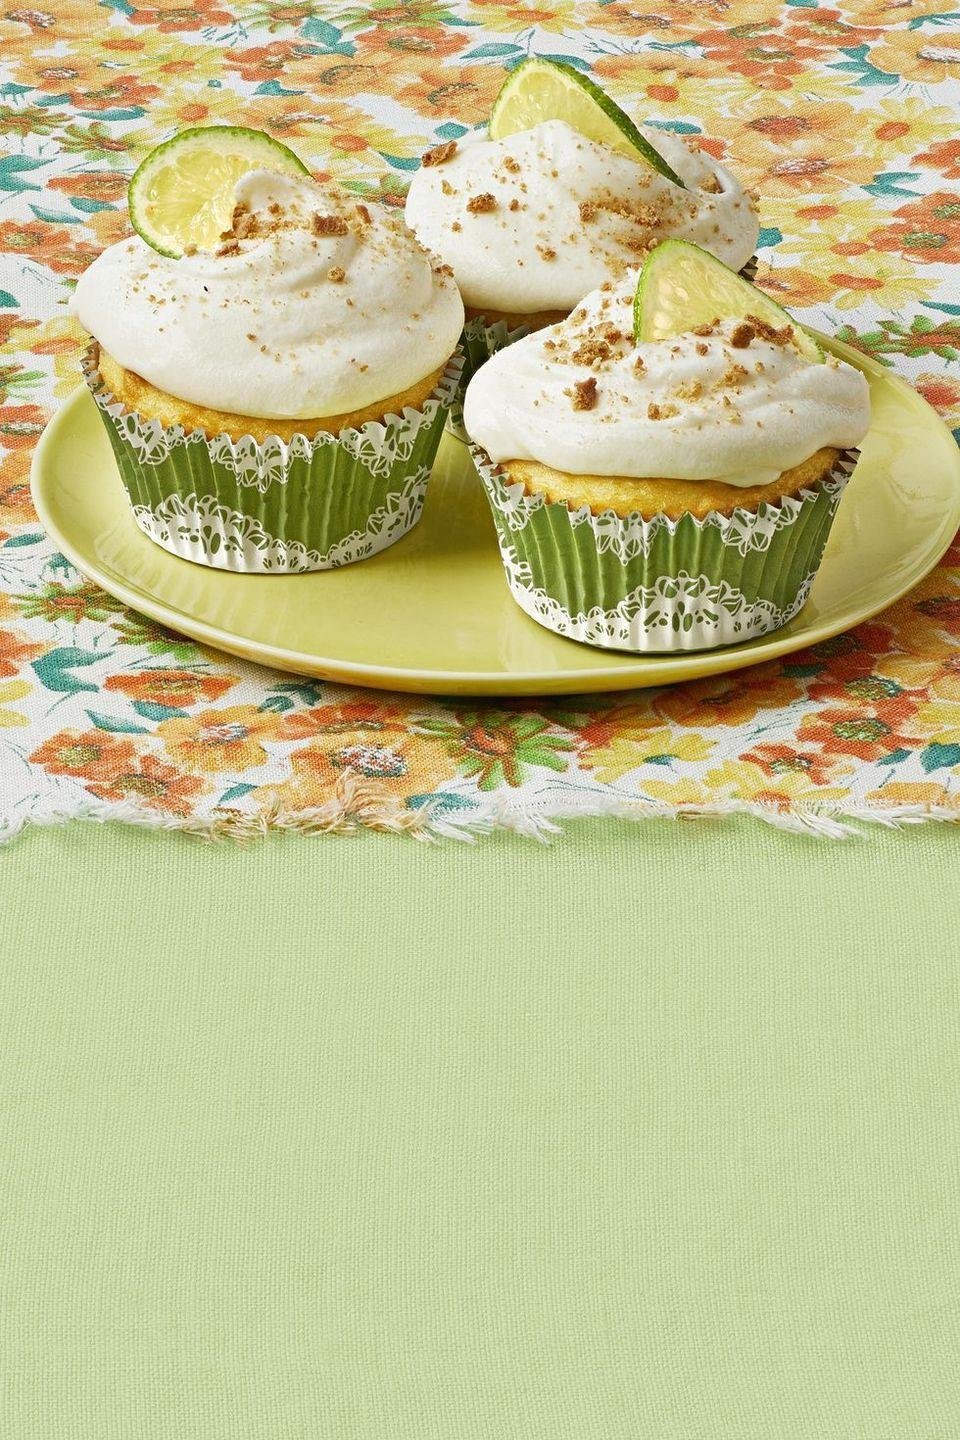 """<p>If you love Key Lime Pie, these cupcakes are for you. Ree starts with a cake mix, then adds a homemade tart lime curd and frosting. </p><p><strong><a href=""""https://www.thepioneerwoman.com/food-cooking/recipes/a32973429/key-lime-pie-cupcakes-recipe/"""" rel=""""nofollow noopener"""" target=""""_blank"""" data-ylk=""""slk:Get Ree's recipe."""" class=""""link rapid-noclick-resp"""">Get Ree's recipe.</a></strong></p><p><a class=""""link rapid-noclick-resp"""" href=""""https://go.redirectingat.com?id=74968X1596630&url=https%3A%2F%2Fwww.walmart.com%2Fsearch%2F%3Fquery%3Dfloral%2Btablecloth%26typeahead%3Dfloral%2Btable&sref=https%3A%2F%2Fwww.thepioneerwoman.com%2Ffood-cooking%2Frecipes%2Fg36343624%2F4th-of-july-cupcakes%2F"""" rel=""""nofollow noopener"""" target=""""_blank"""" data-ylk=""""slk:SHOP FLORAL TABLECLOTHS"""">SHOP FLORAL TABLECLOTHS</a></p>"""